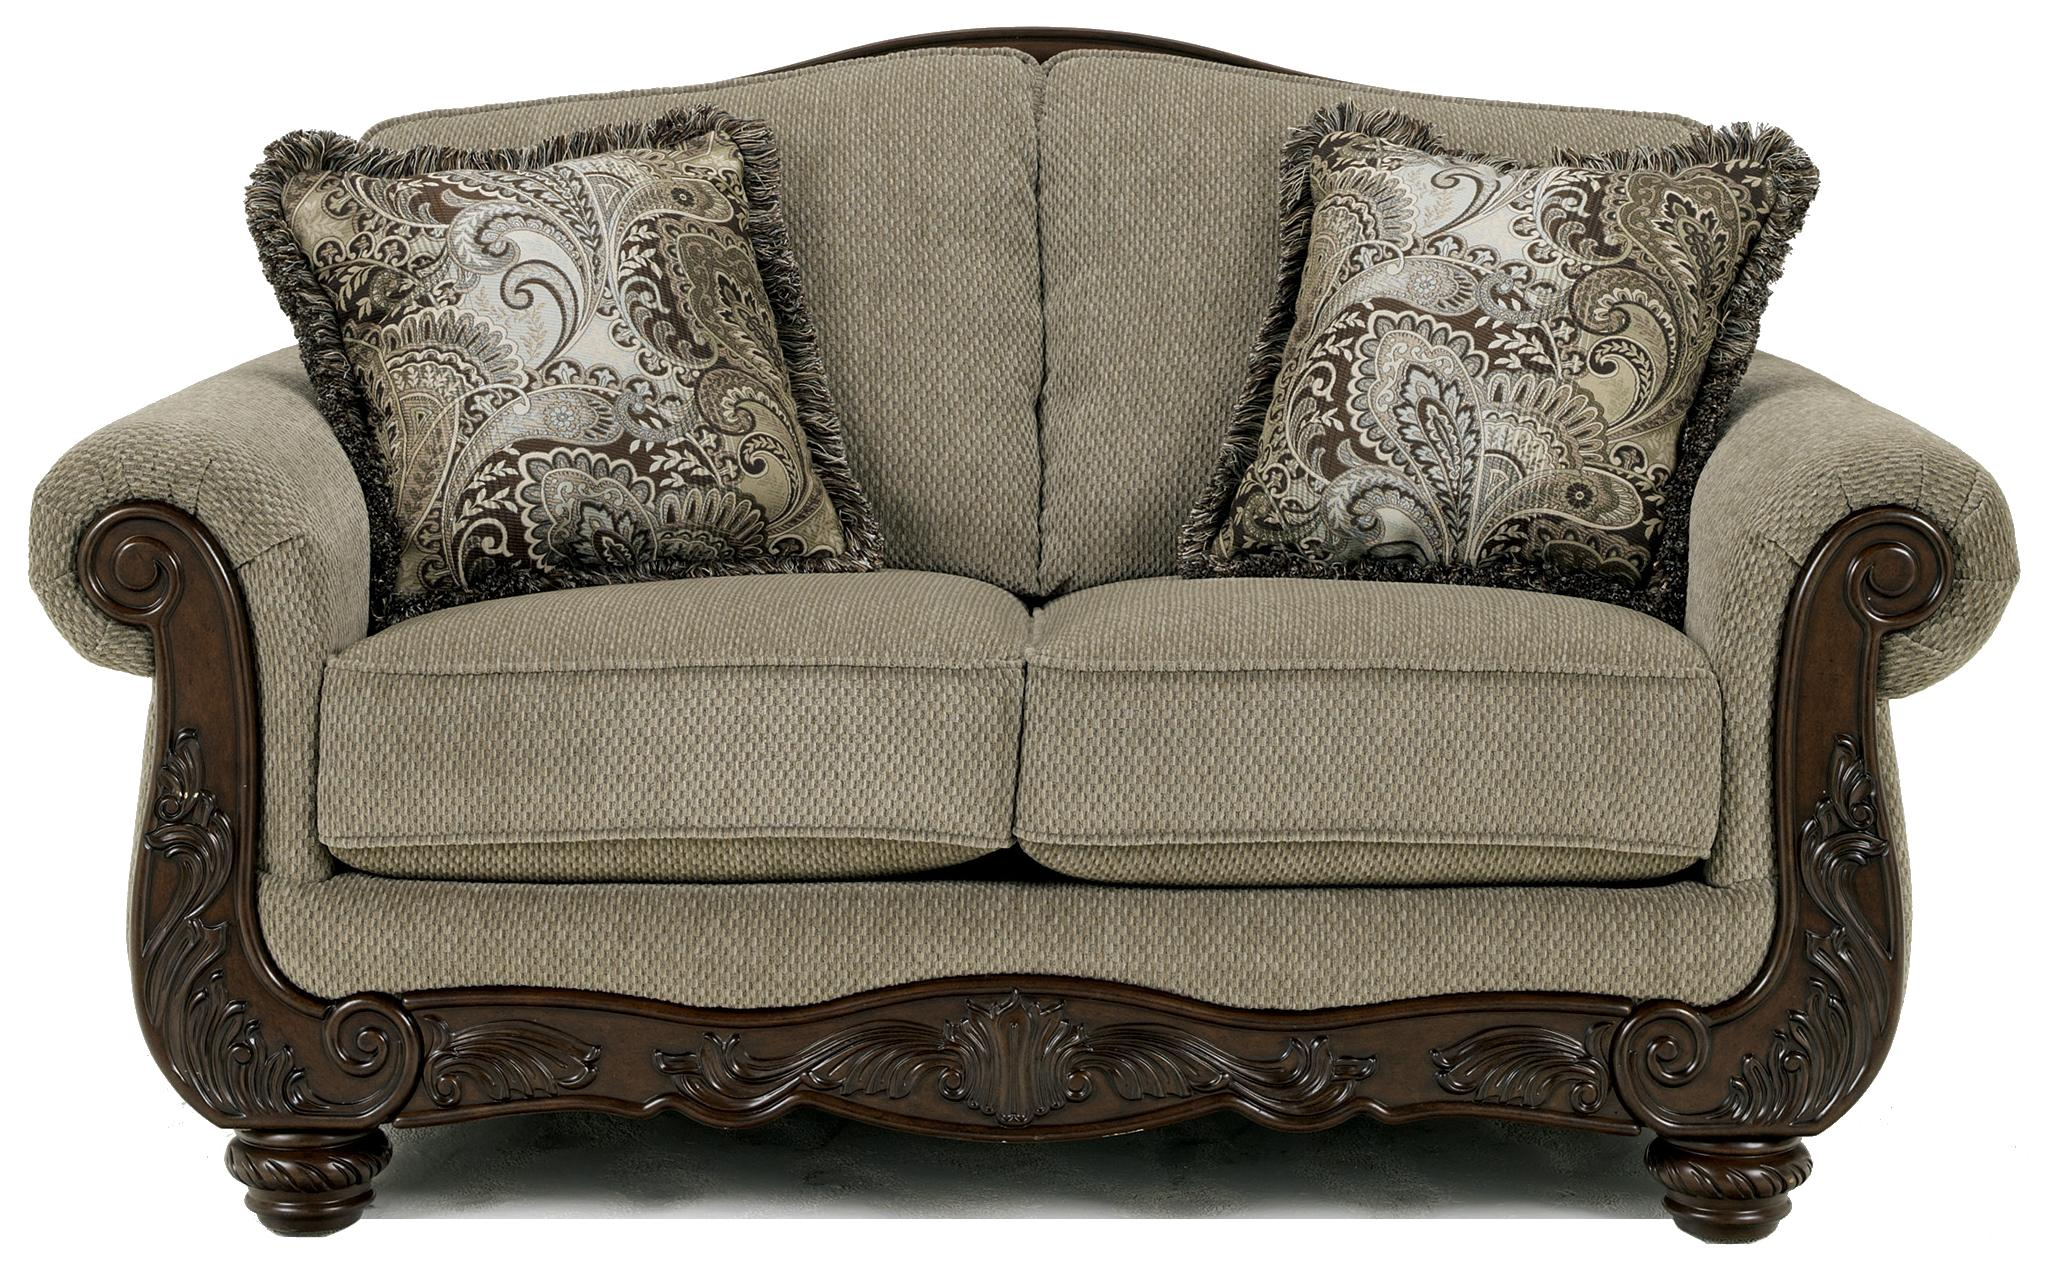 Signature Design by Ashley Martinsburg - Meadow Loveseat - Item Number: 5730035